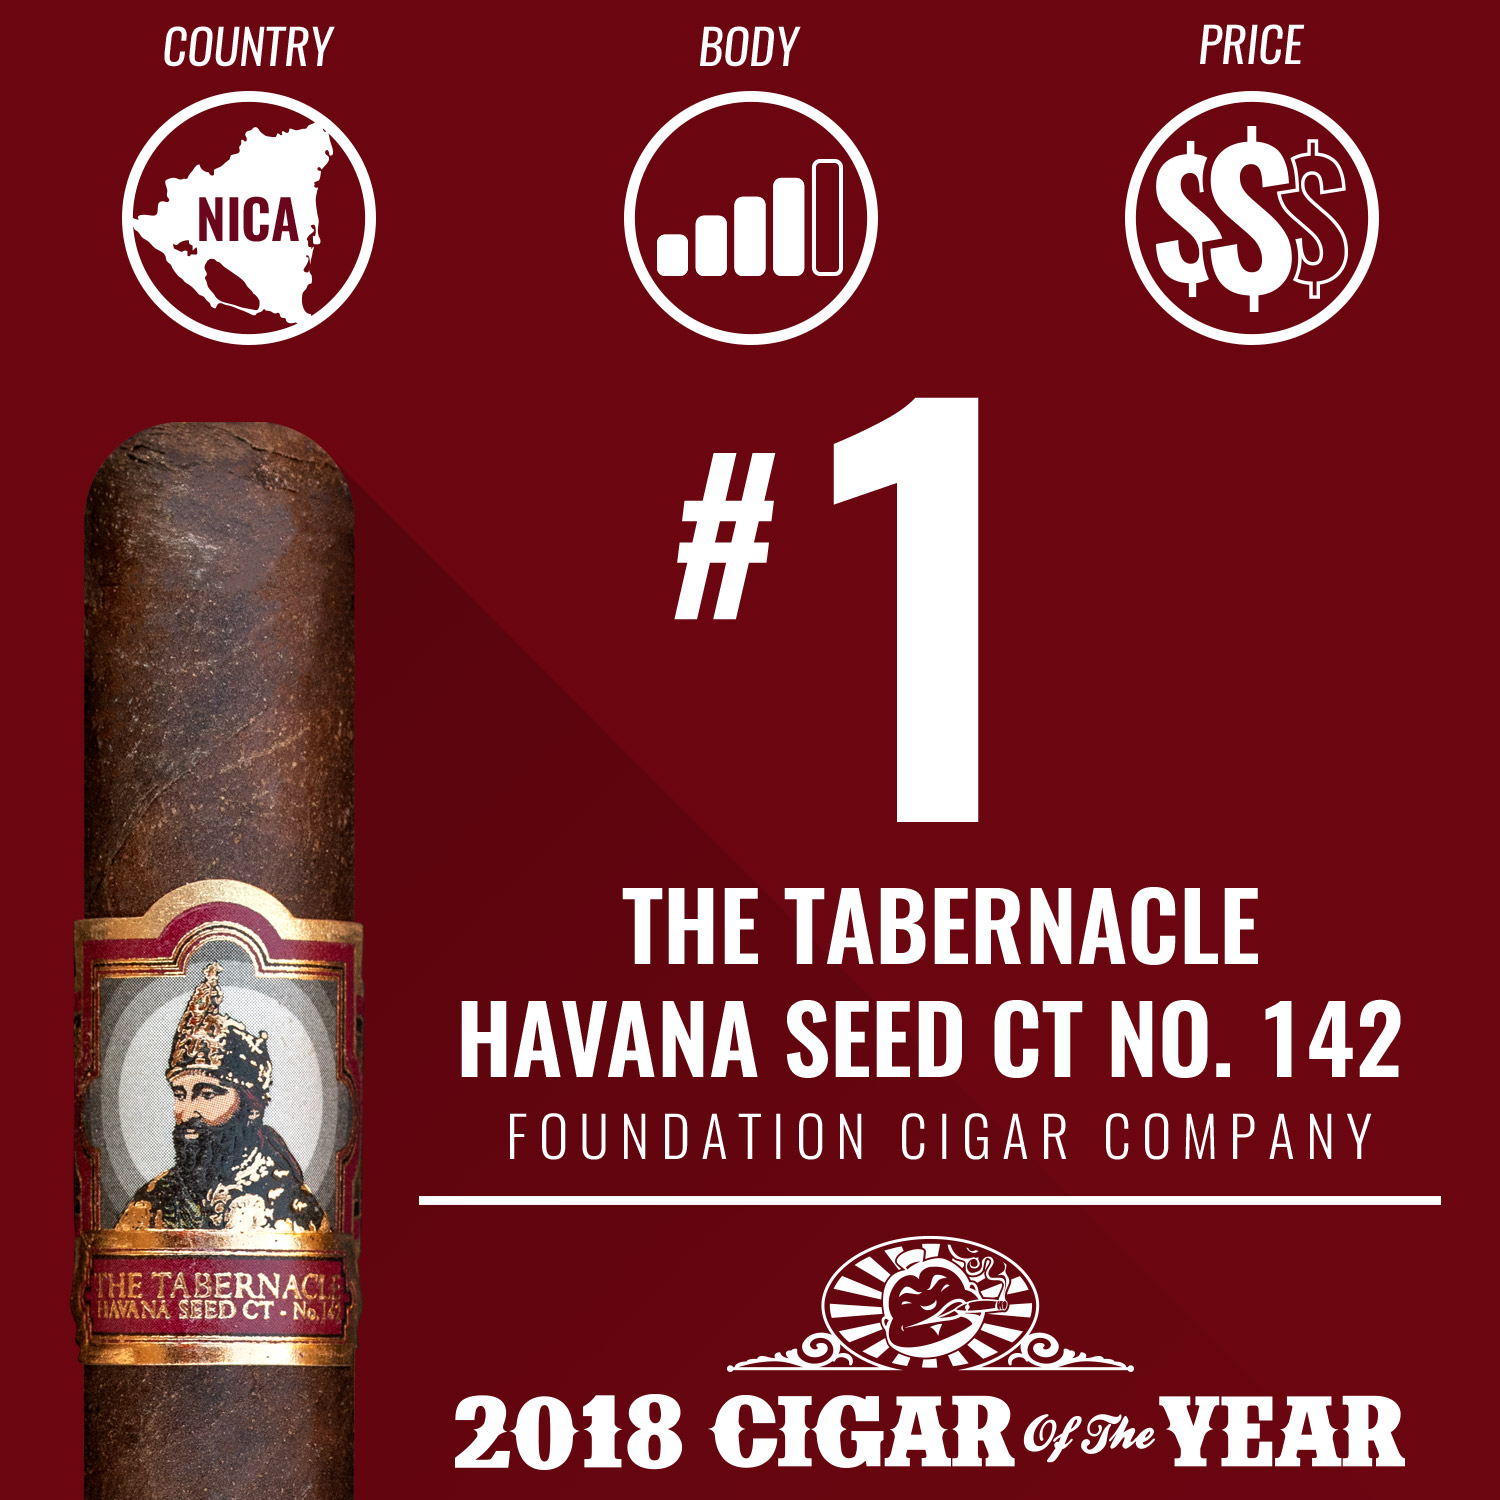 Foundation The Tabernacle Havana Seed CT No. 142 No. 1 Cigar of the Year 2018